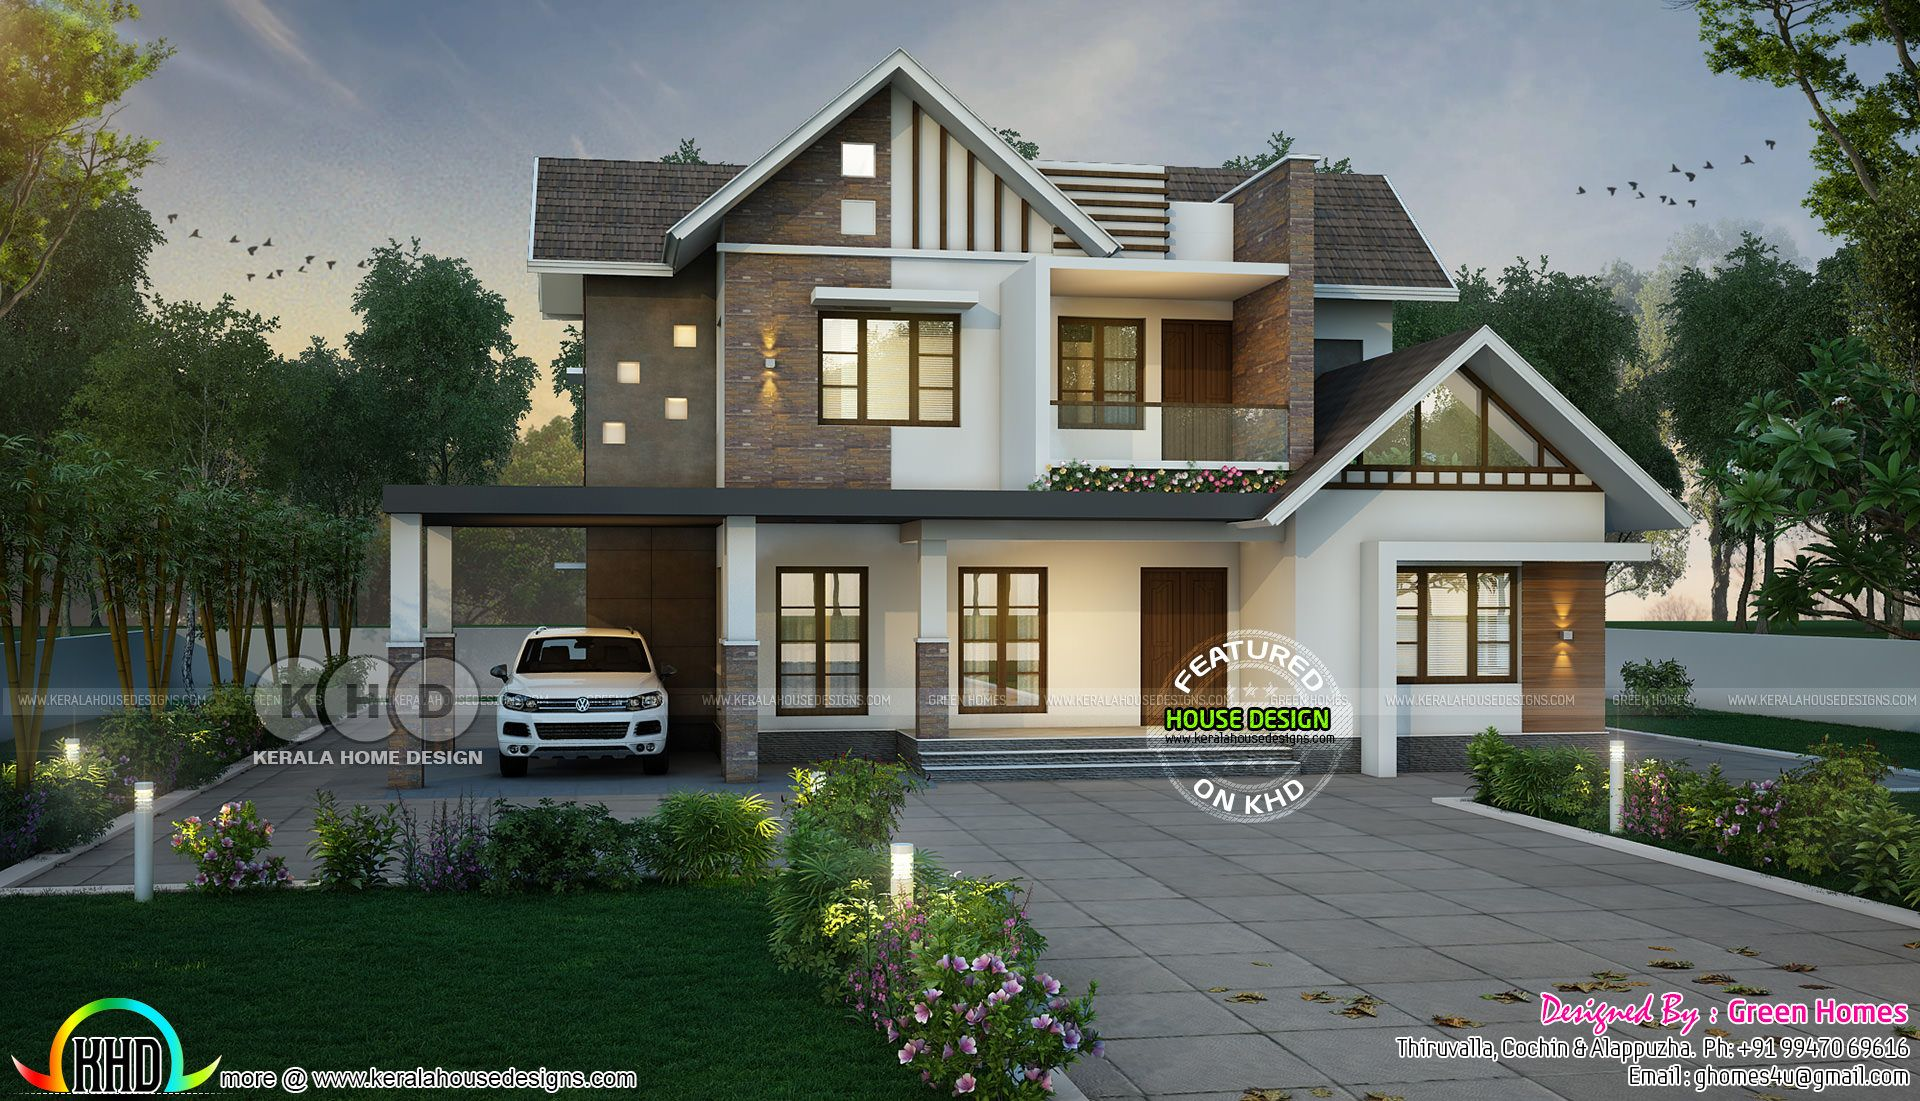 Sloping Roof Mix 4 Bedroom 3000 Sq Ft Home Kerala House Design House Design House Architecture Design